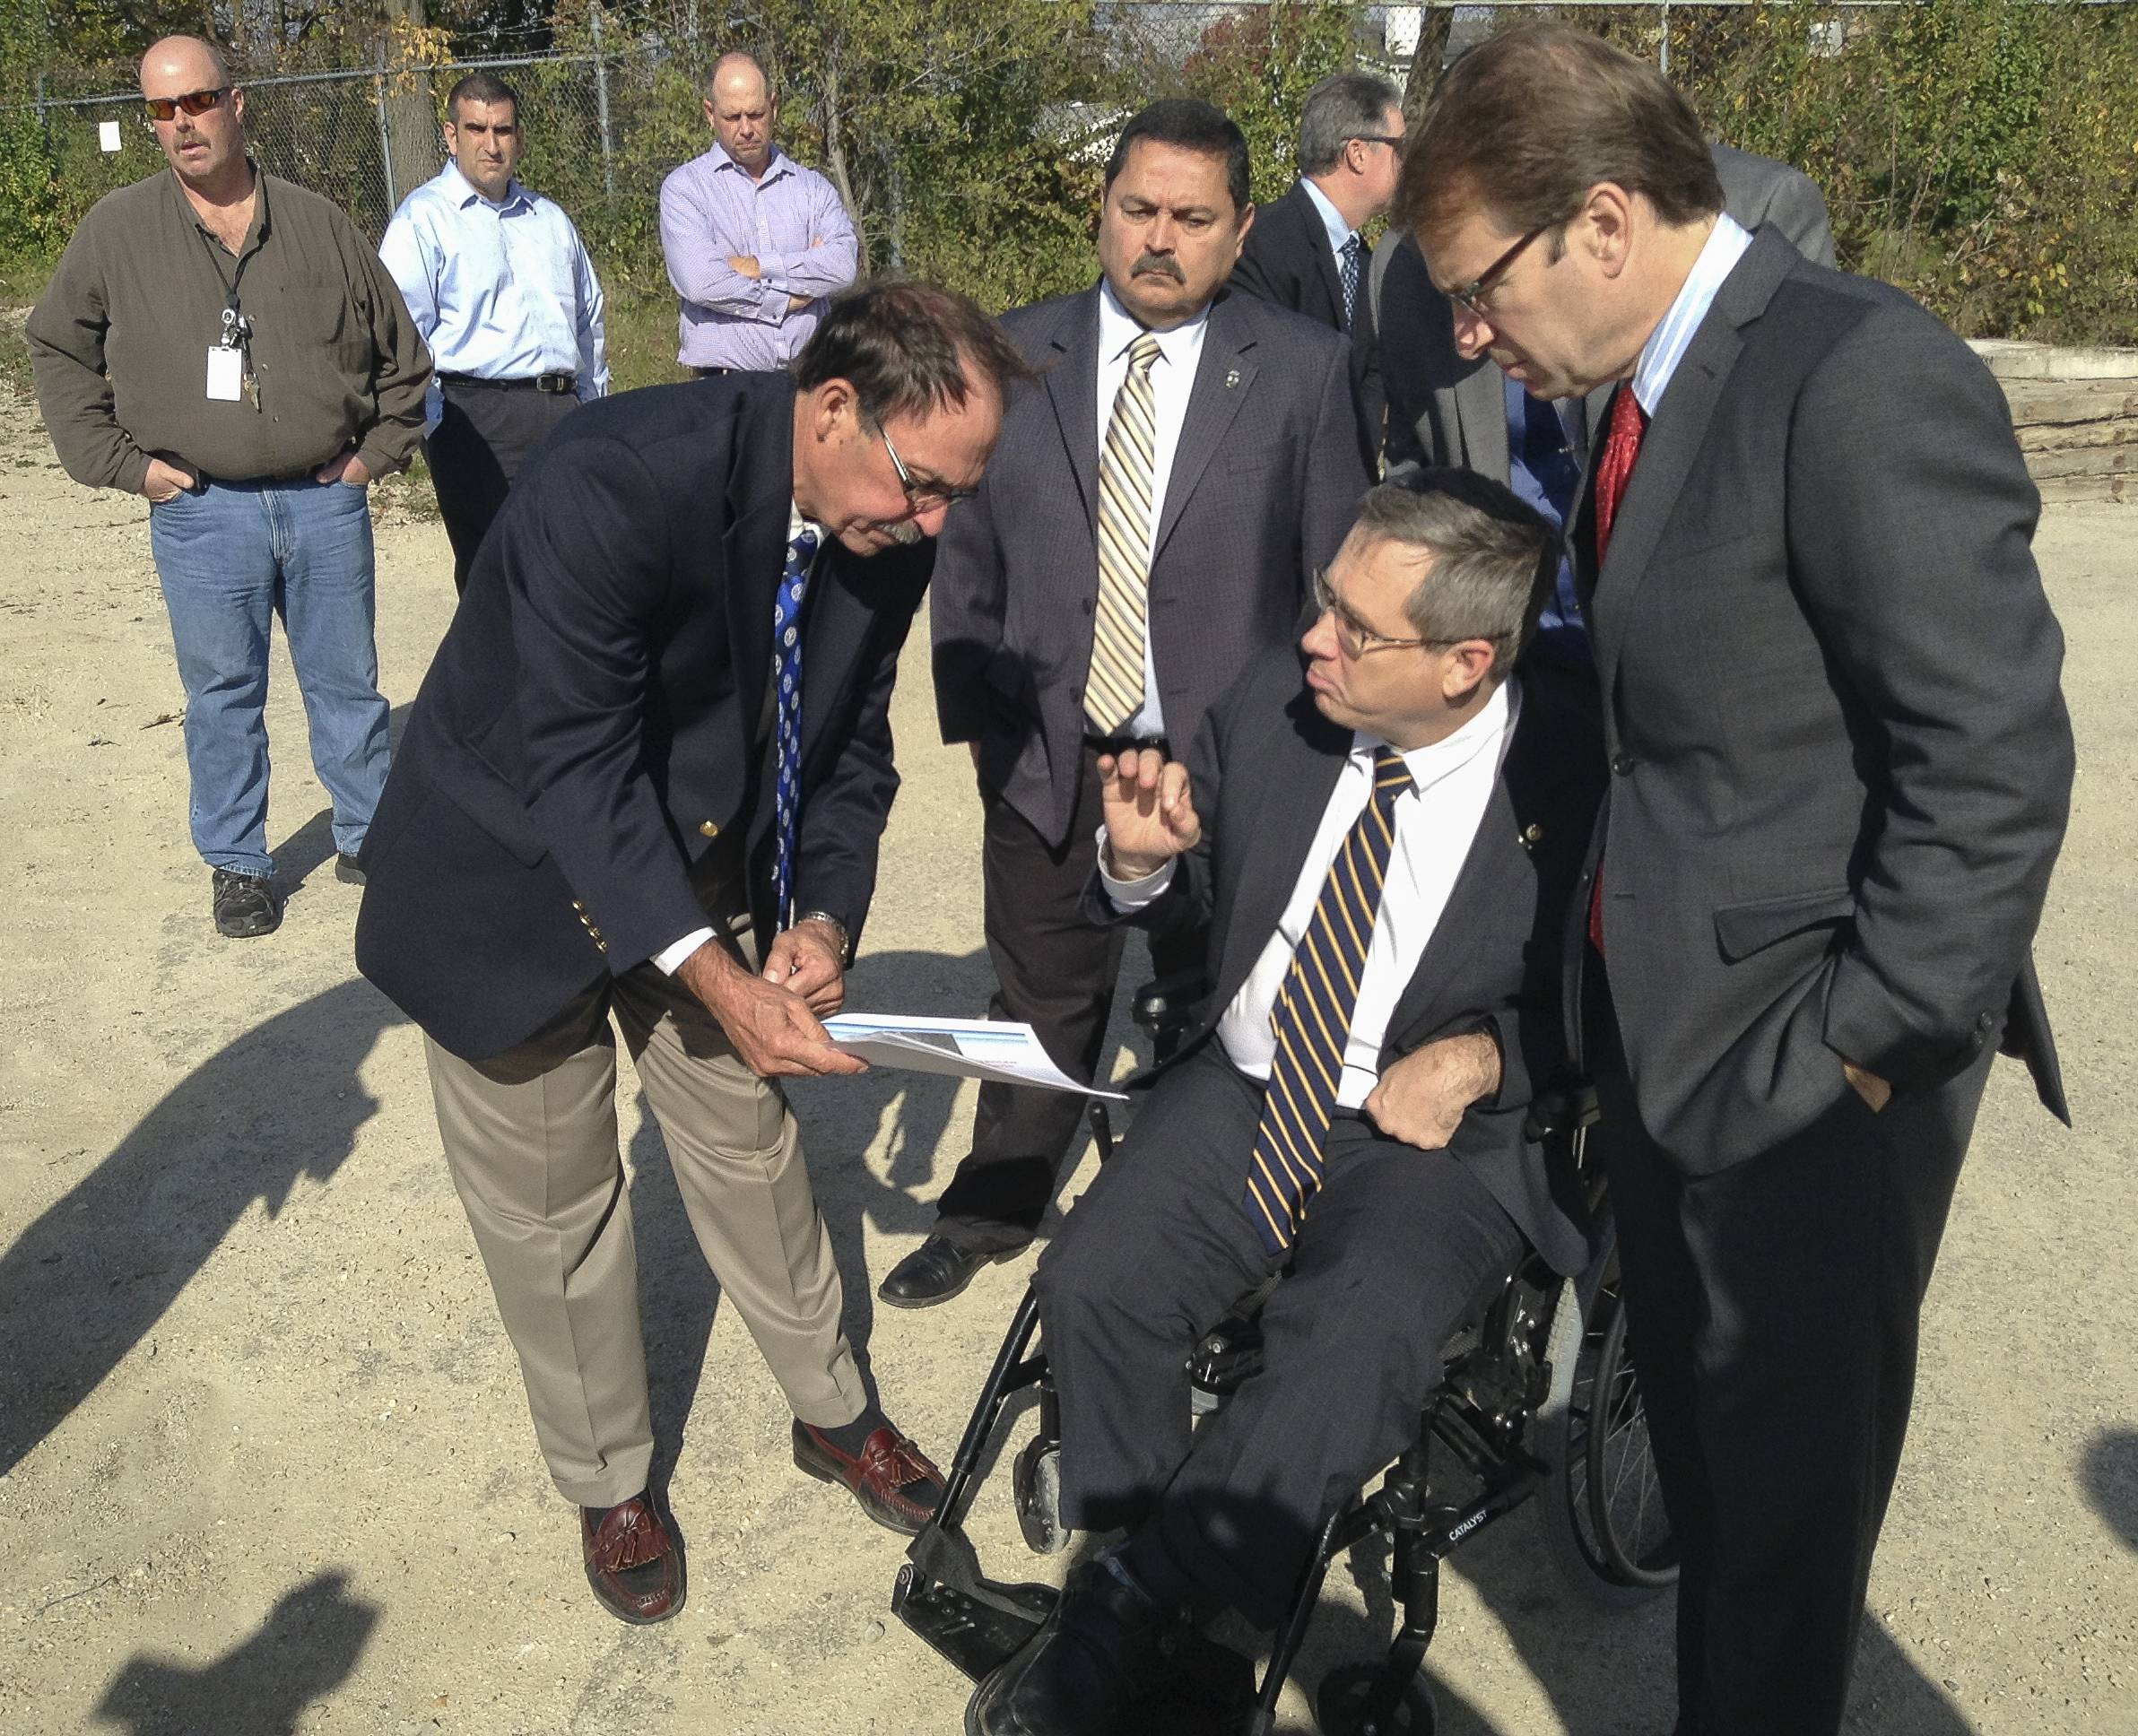 In October 2014, U.S. Rep. Peter Roskam, right, and U.S. Sen. Mark Kirk toured the former Kerr-McGee factory site in West Chicago. Both lawmakers have since worked to secure federal money to help pay for the cleanup of the property.